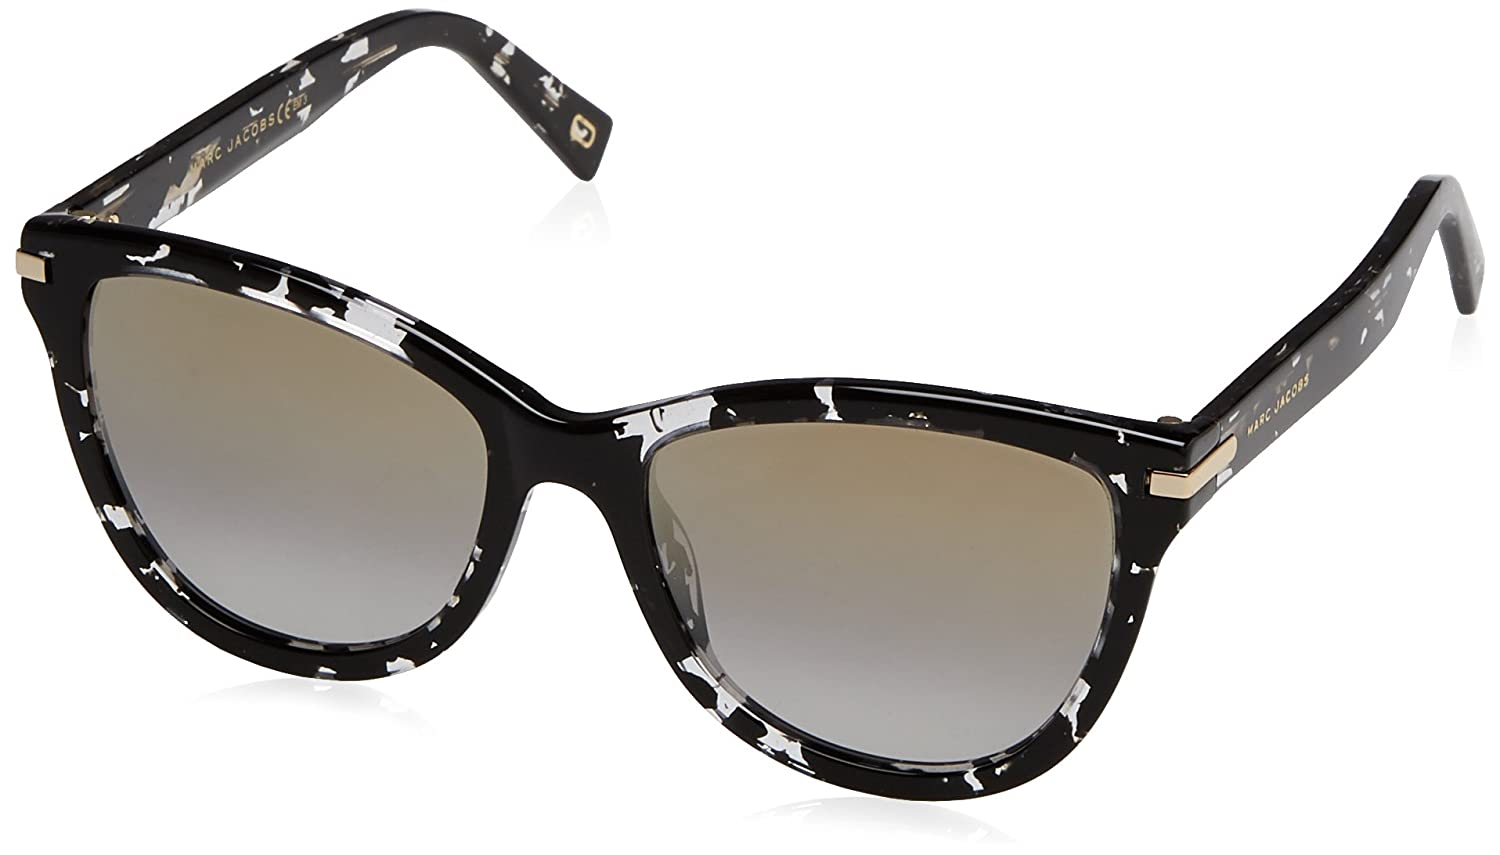 Amazon.com: Marc Jacobs Womens Marc187s Cateye Sunglasses ...